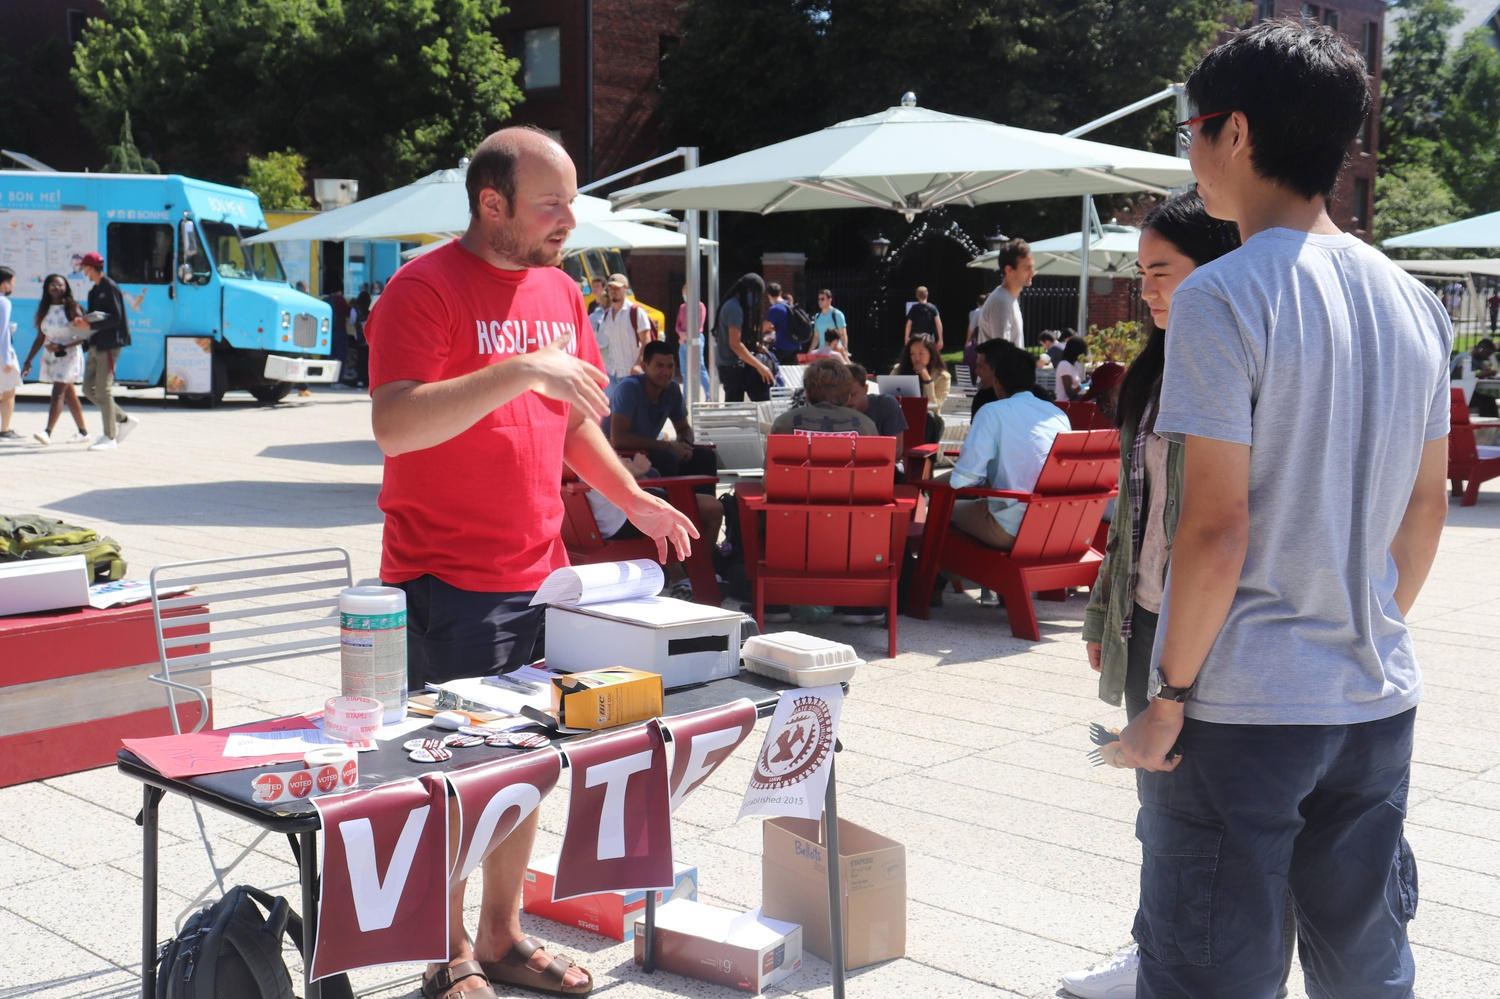 Andrew Bergman, a member of the Executive Board of the Harvard Graduate Students Union, converses with two students on the Science Center Plaza.